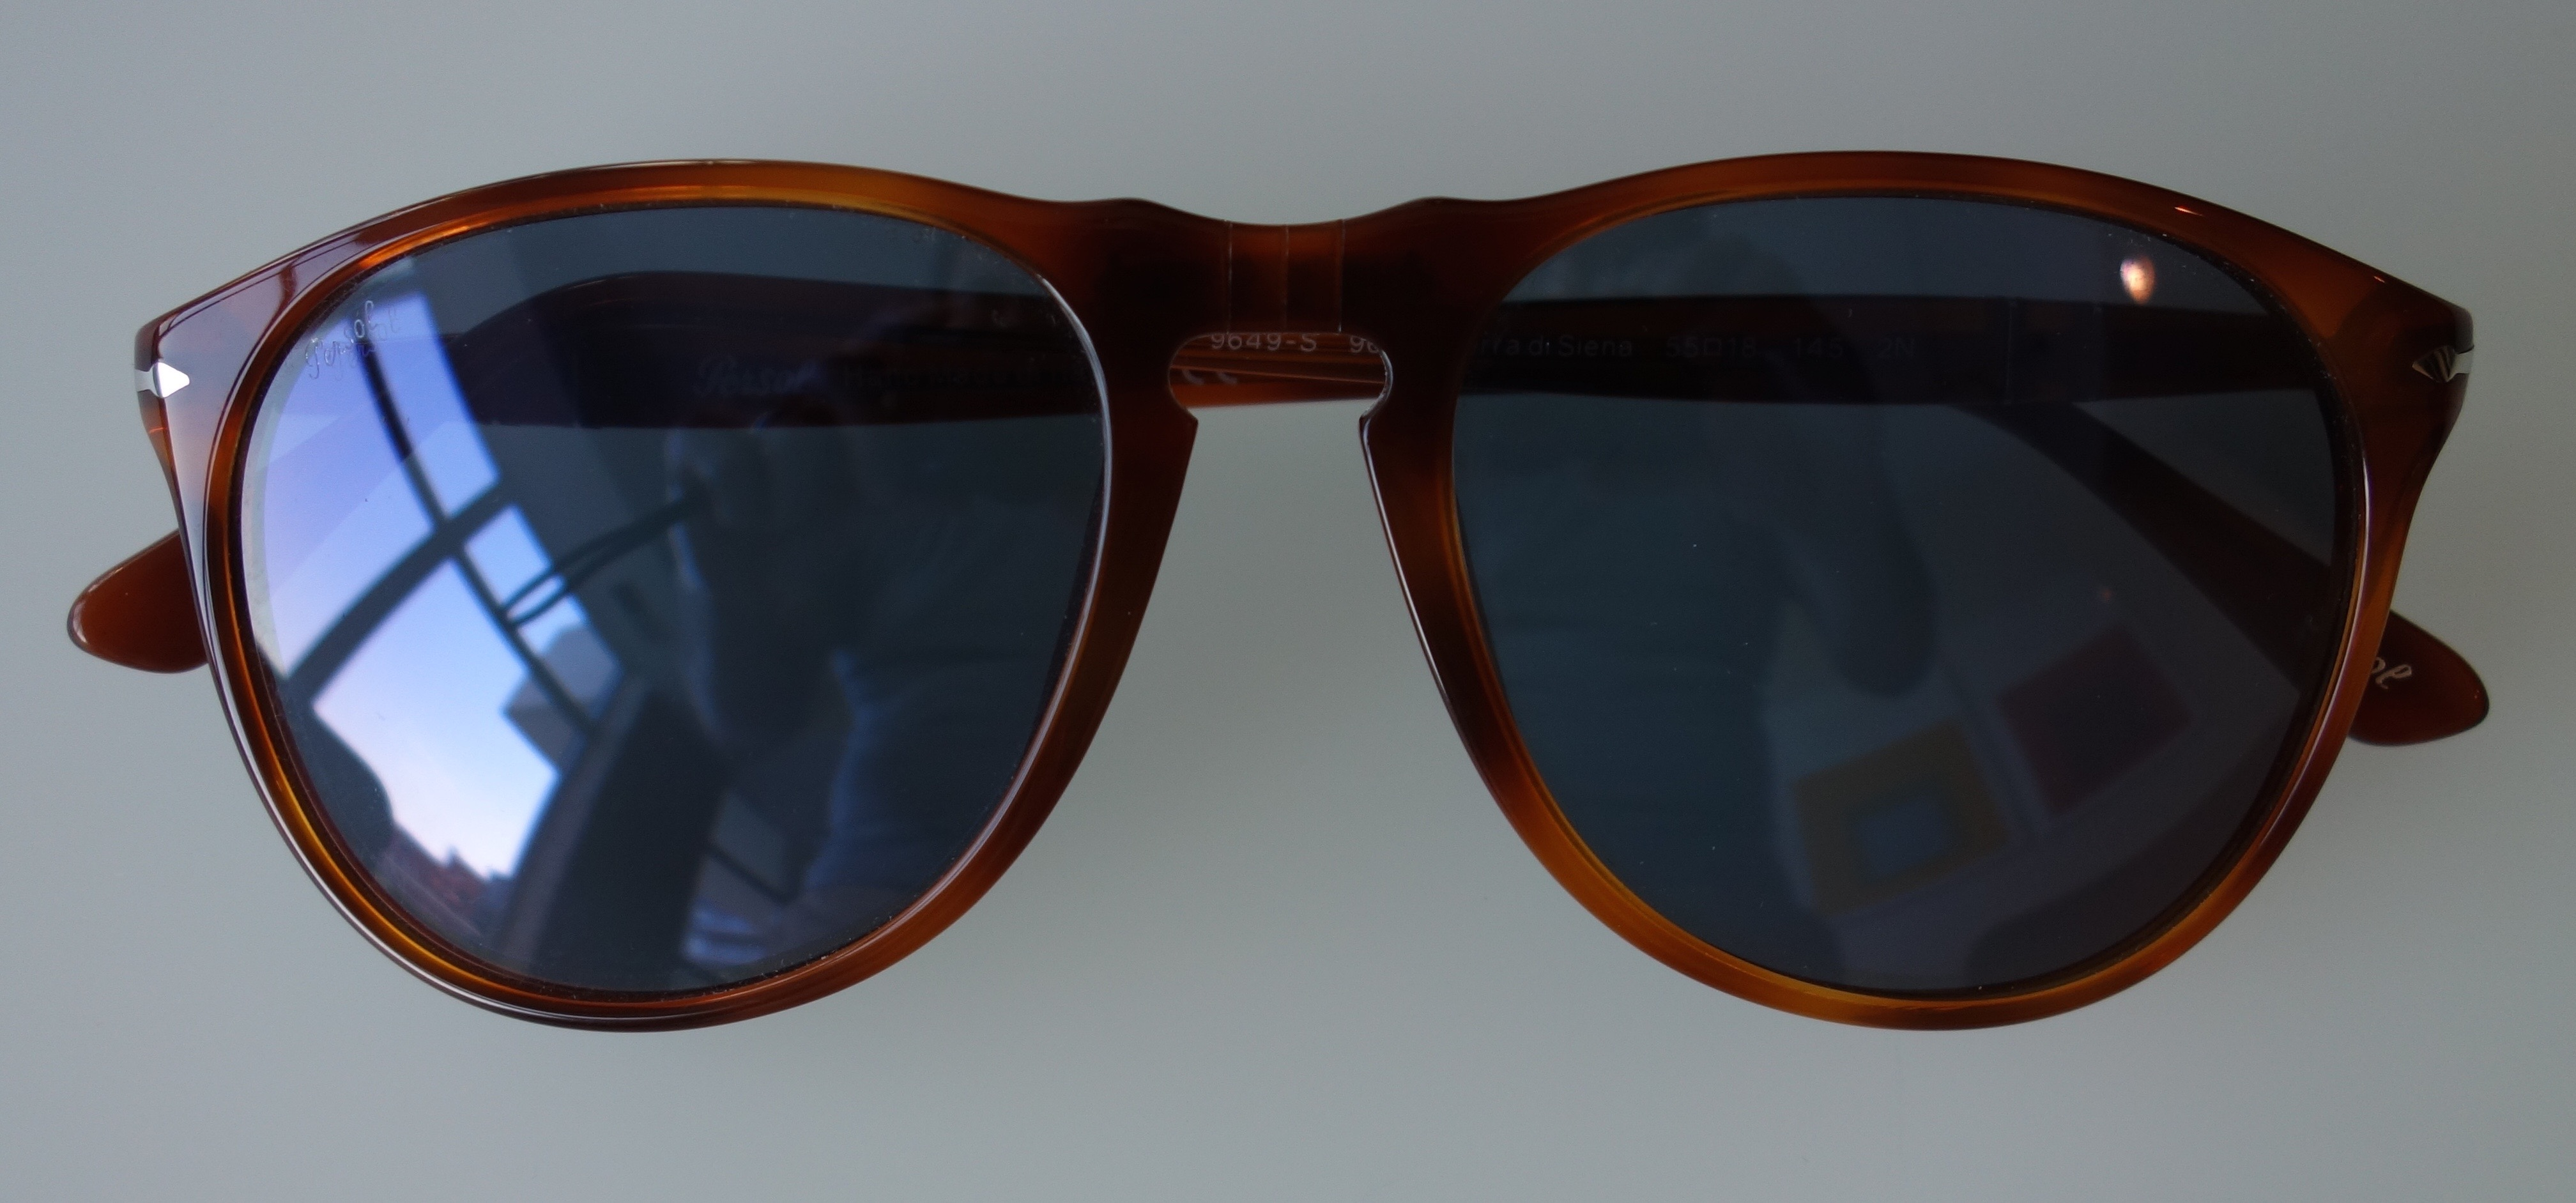 8a08c57d96a Persol 9649 96 56 55 Like 649